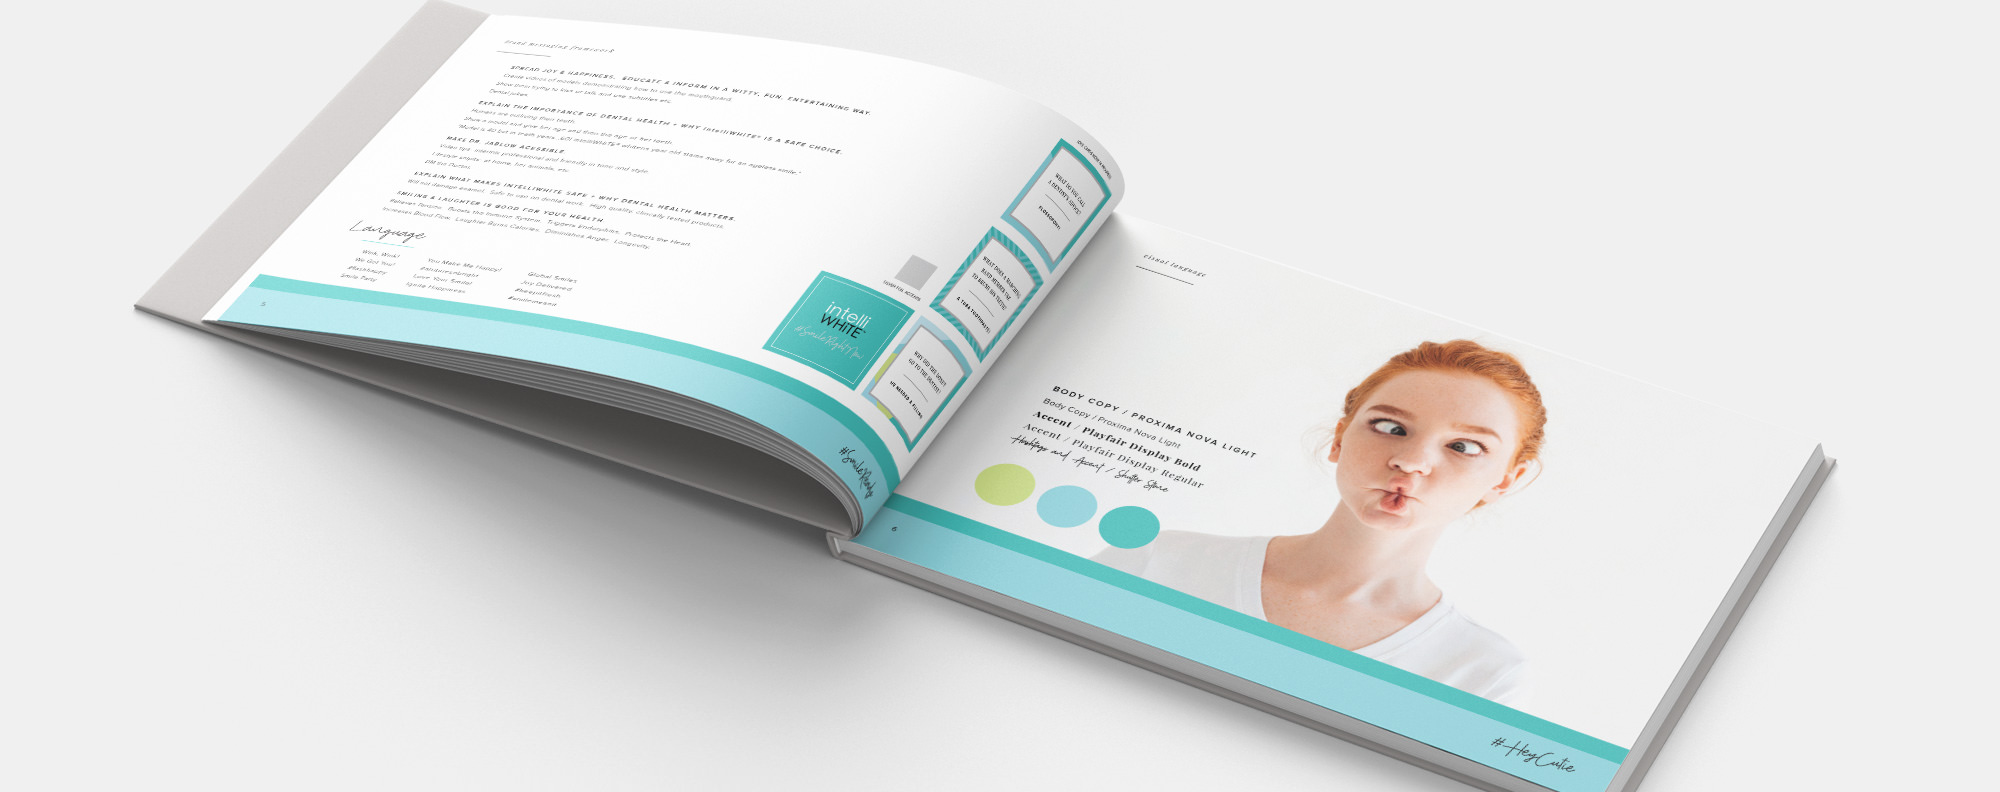 Intelliwhite brand book mockup